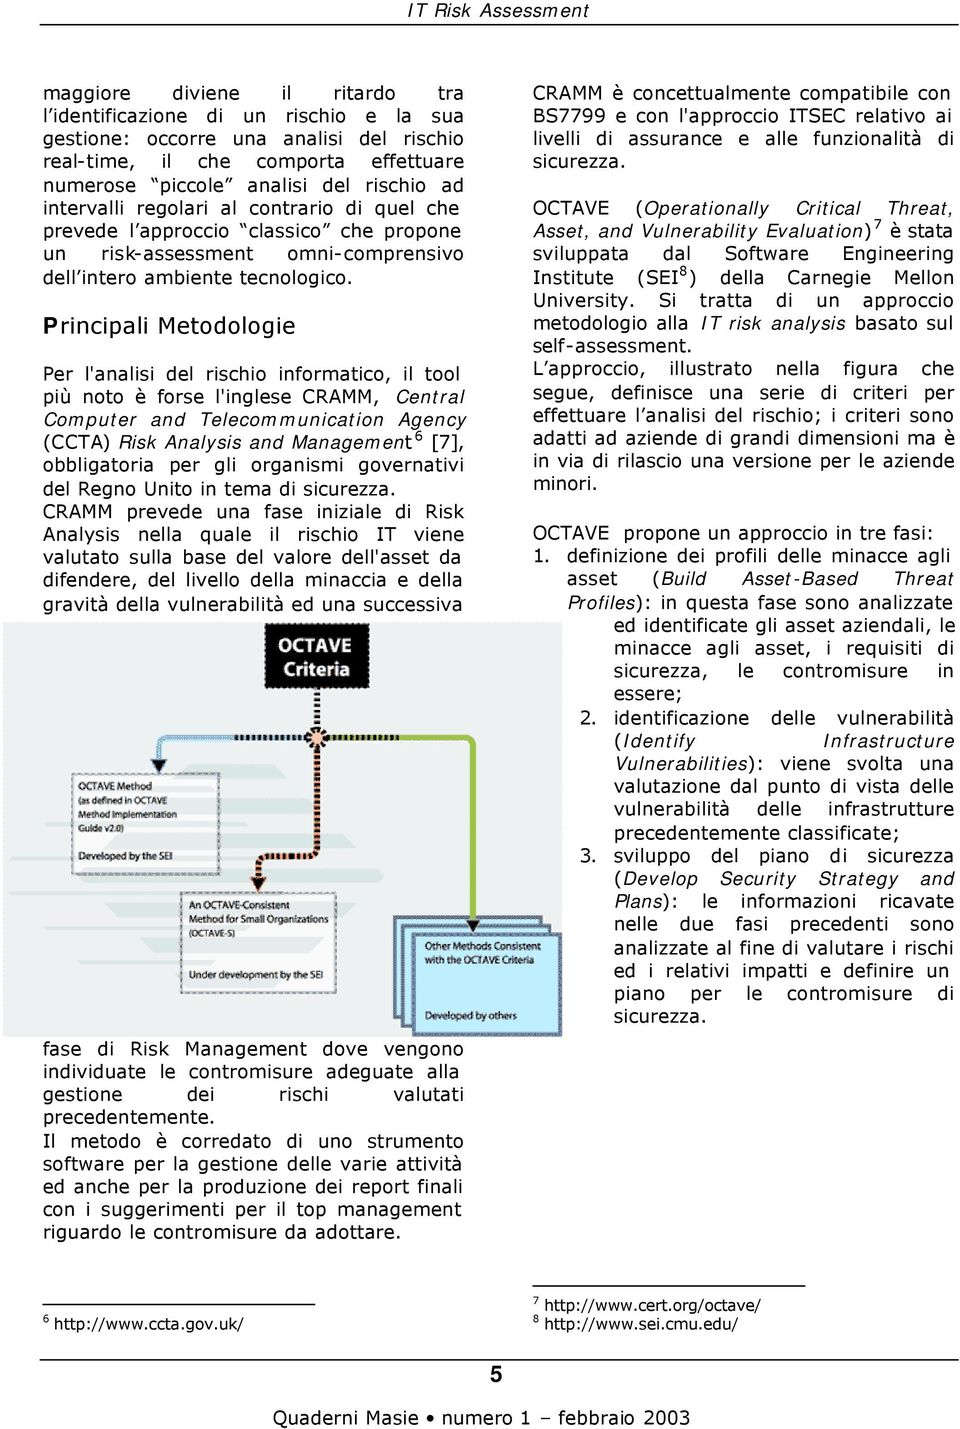 Principali Metodologie Per l'analisi del rischio informatico, il tool più noto è forse l'inglese CRAMM, Central Computer and Telecommunication Agency (CCTA) Risk Analysis and Management 6 [7],